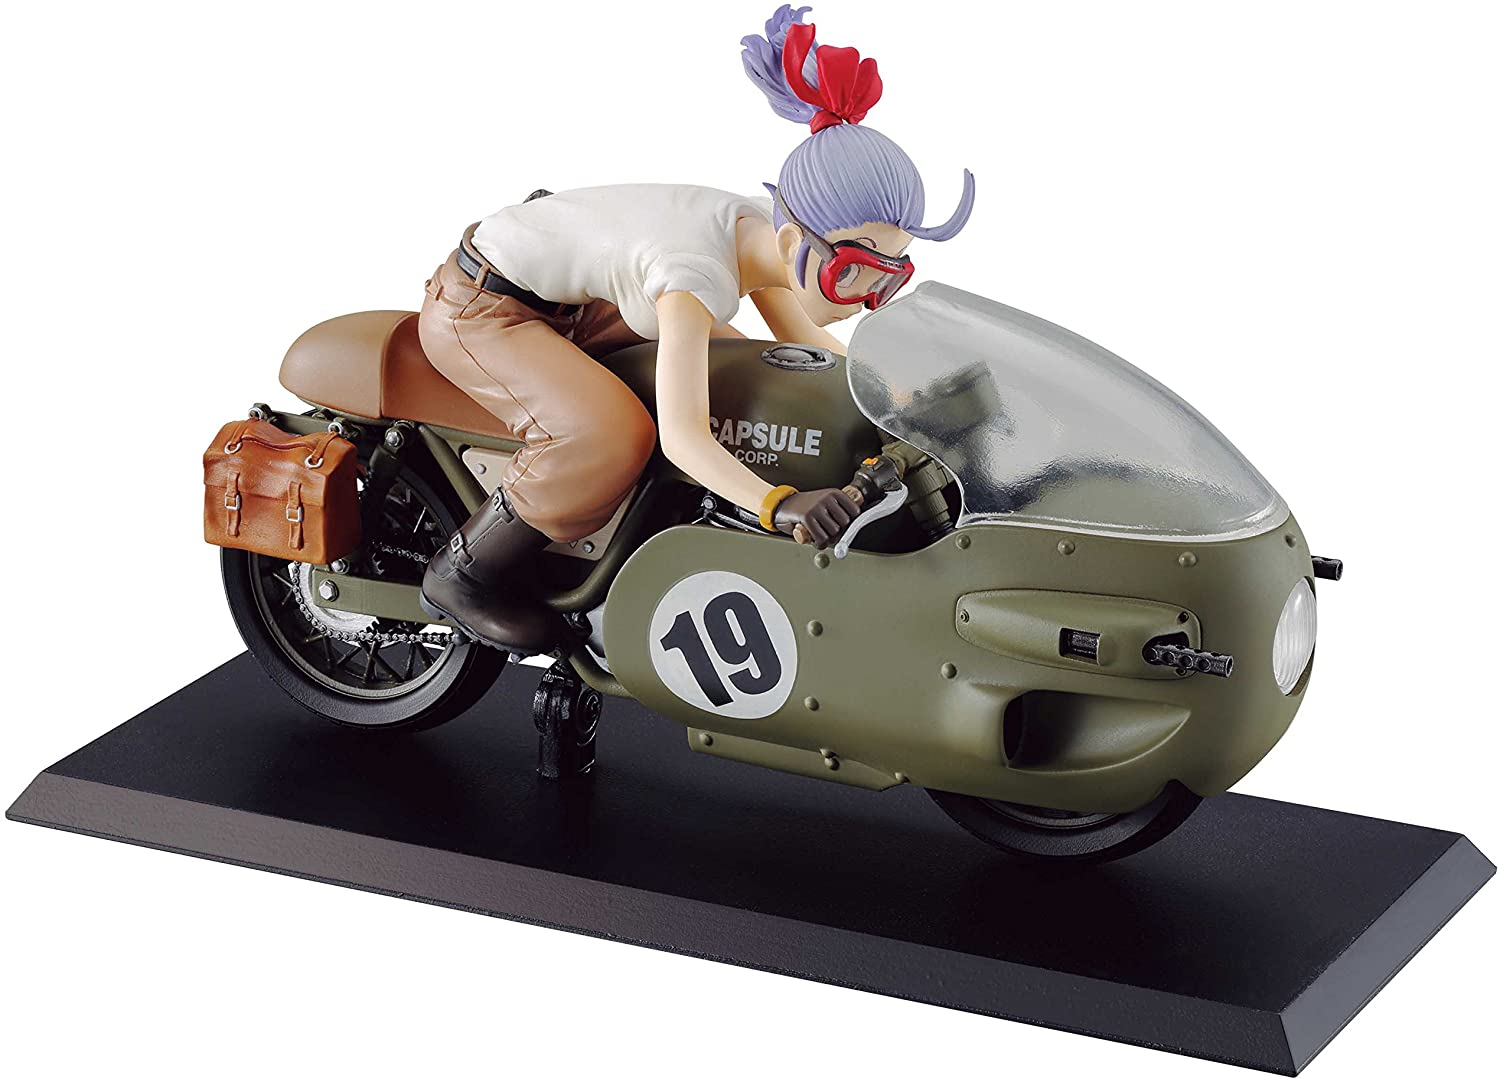 Megahouse Dragon Ball Z: Real McCoy 03: Bulma Desktop Statue